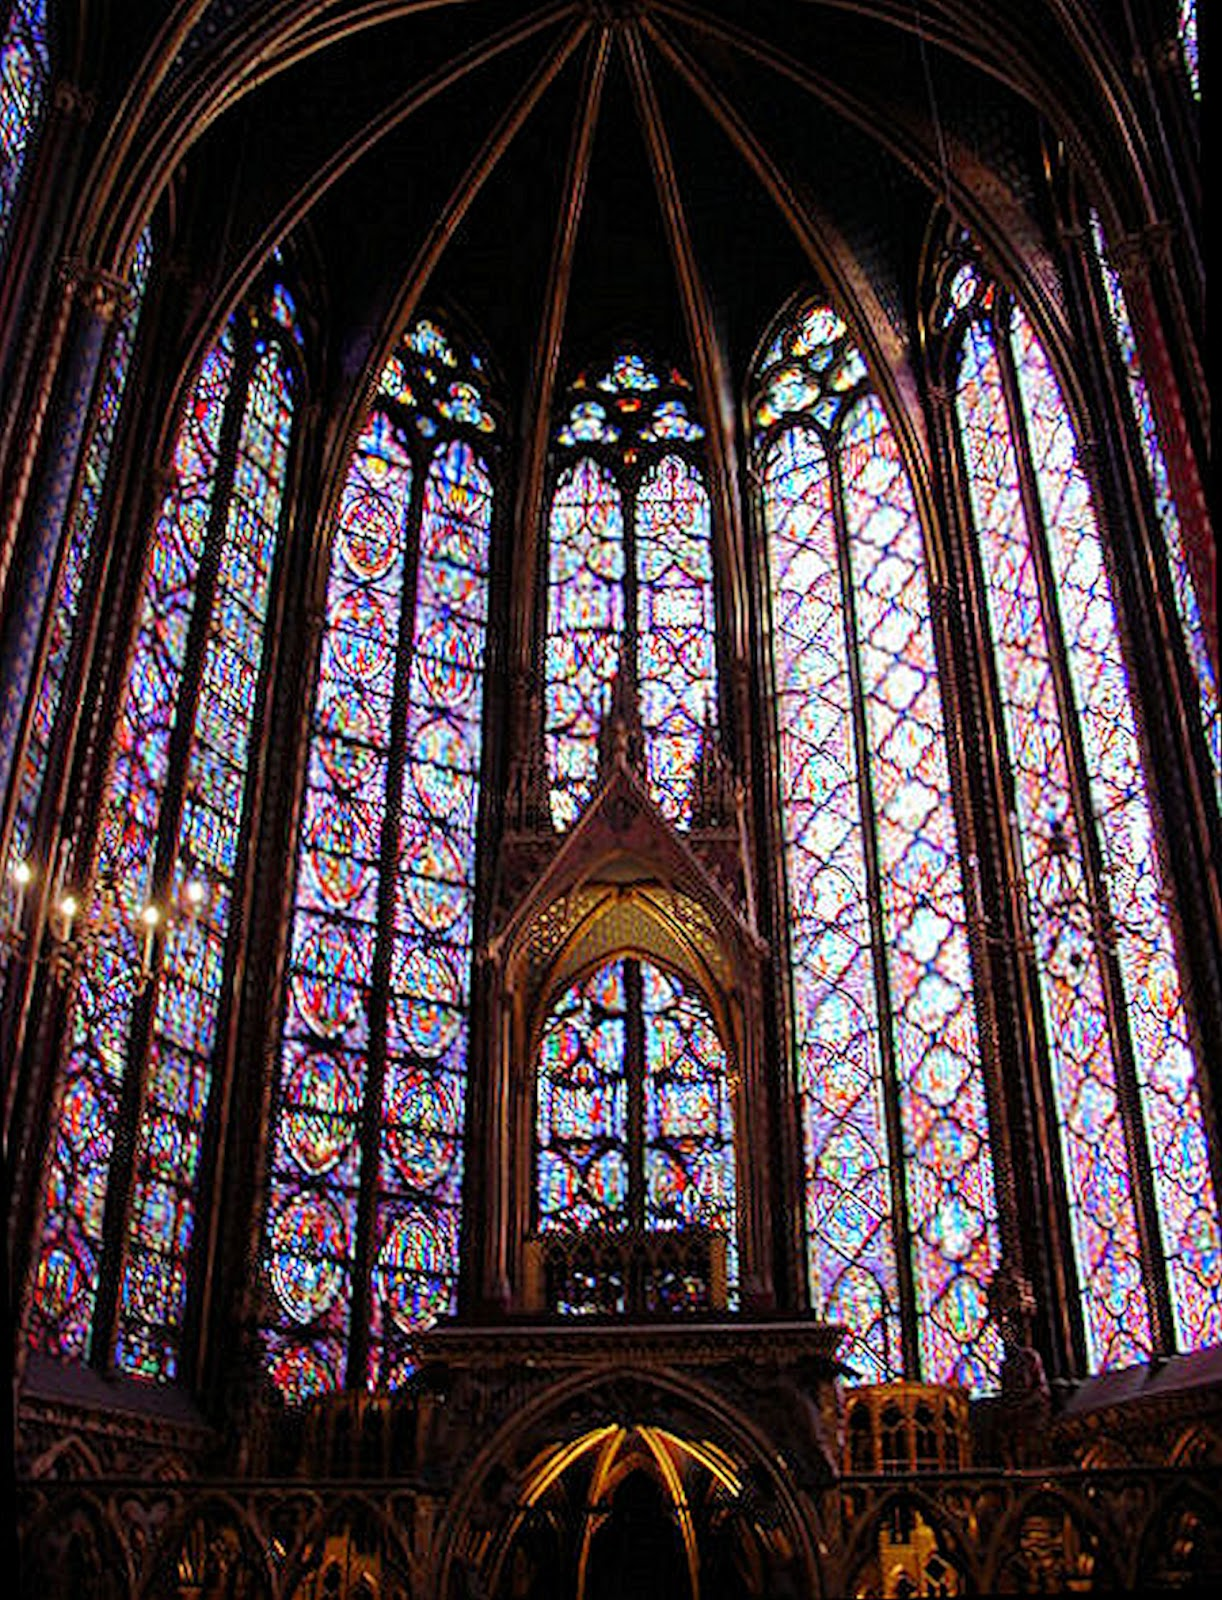 Soaring Lancet Or Pointed Arch Windows Of Sainte Chapelle Bathe The Interiors In Heavenly Light